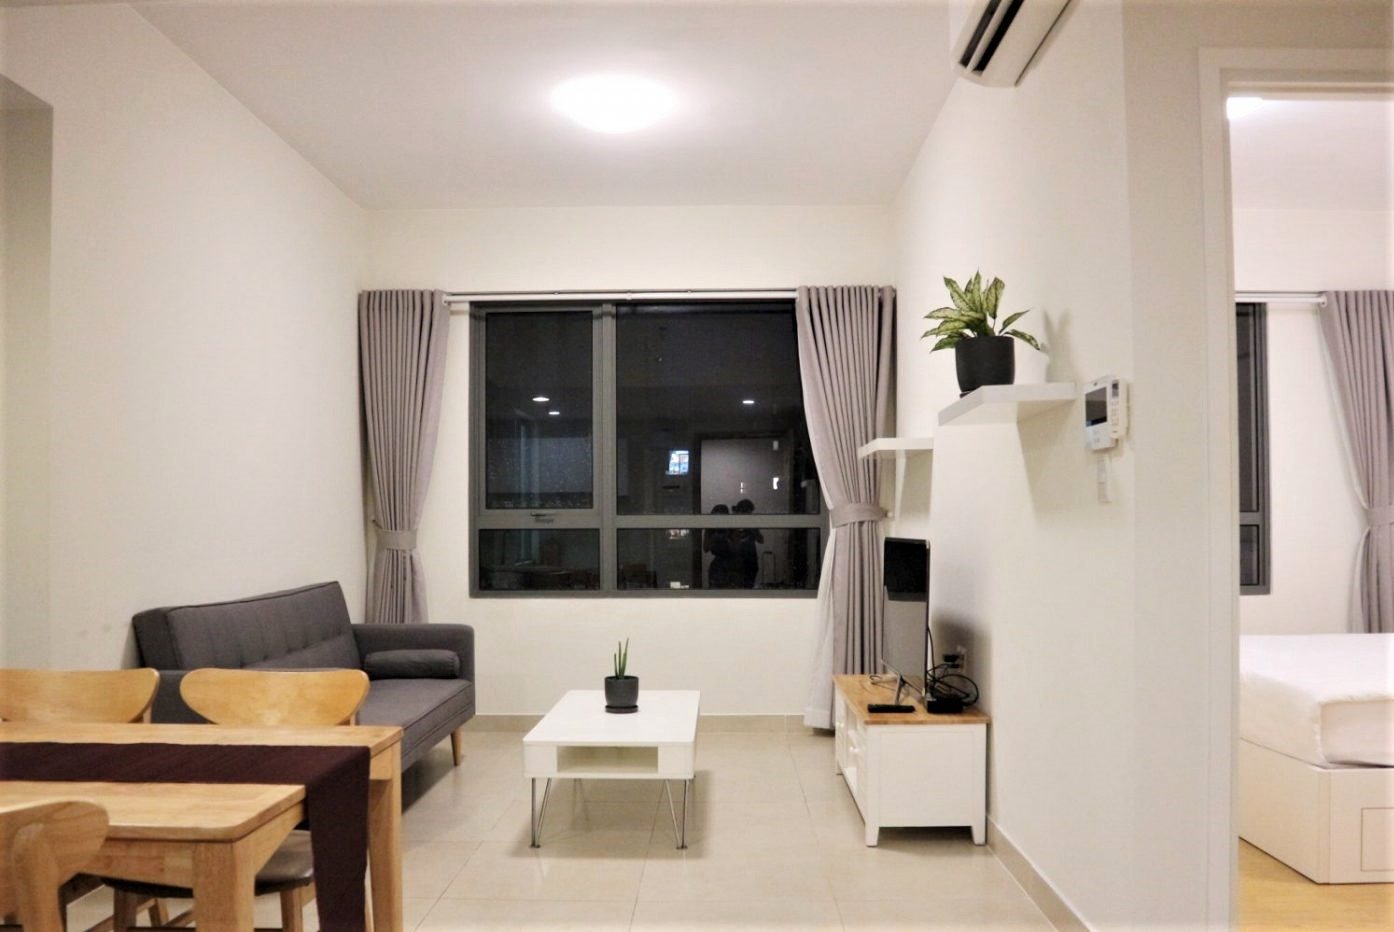 D21485933 - Masteri Thao Dien Apartment For Rent - Best Price For Long-term - 1 bedroom